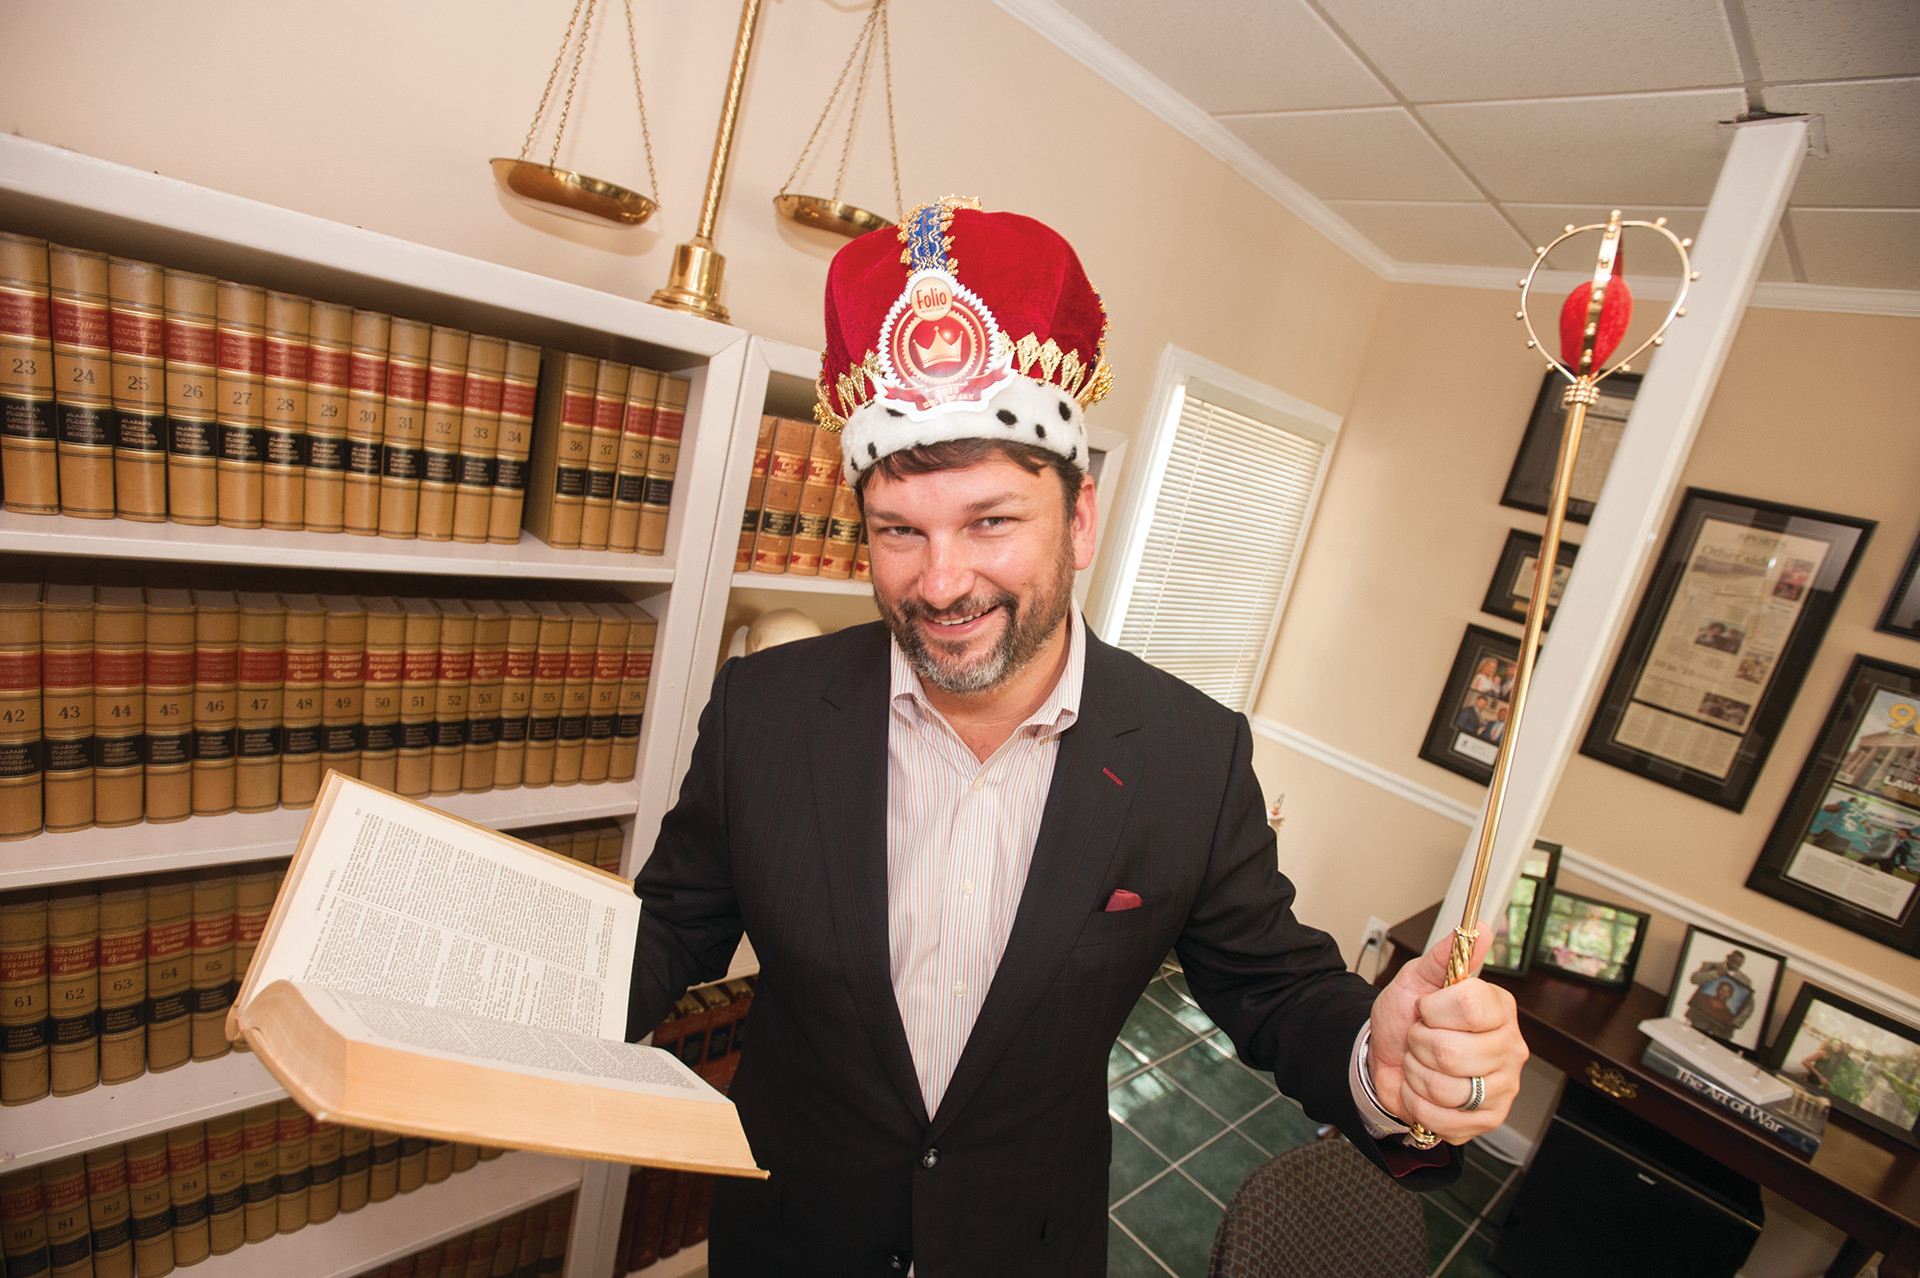 Folio Weekly readers crowned John M. Phillips Best Lawyer for the third year in a row and named him Best Righteous Crusader as well.